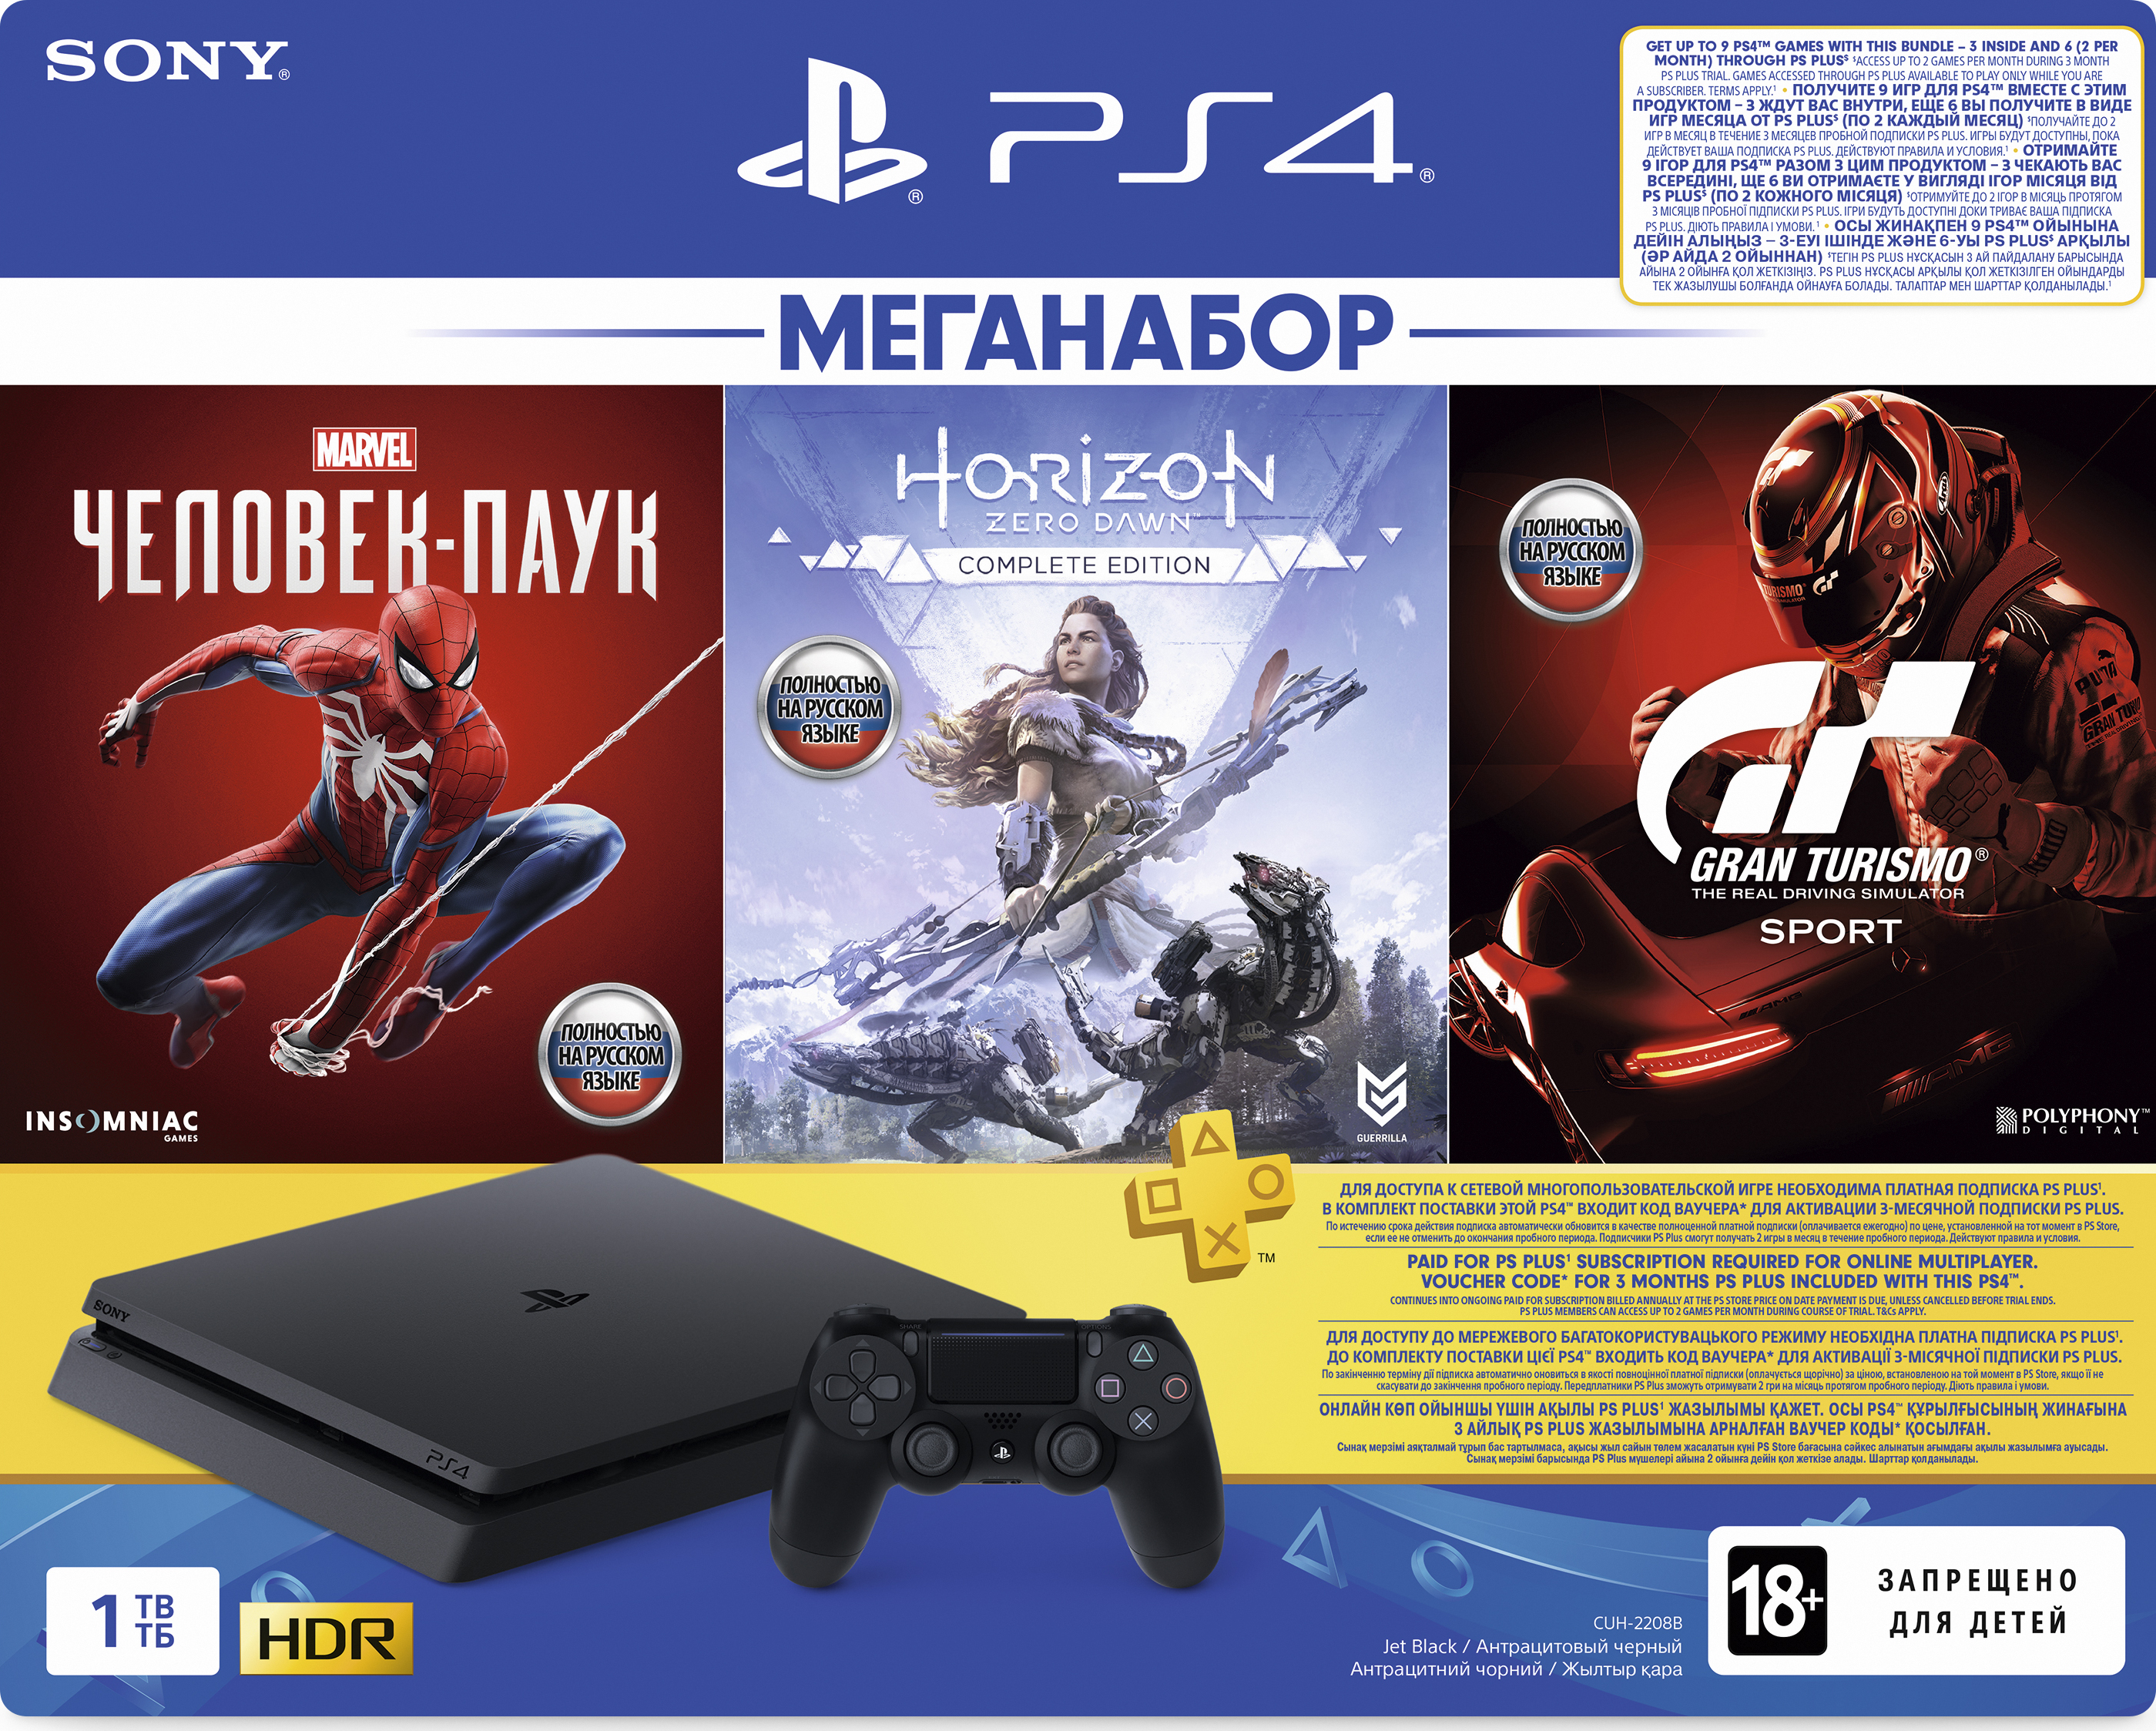 Sony PlayStation 4 Slim (1TB) (CUH-2208B) +Marvel's Spider-Man + Horizon Zero Dawn Complete Edition + Gran Turismo Sport + PS Plus 90 дней от  MegaStore.kg